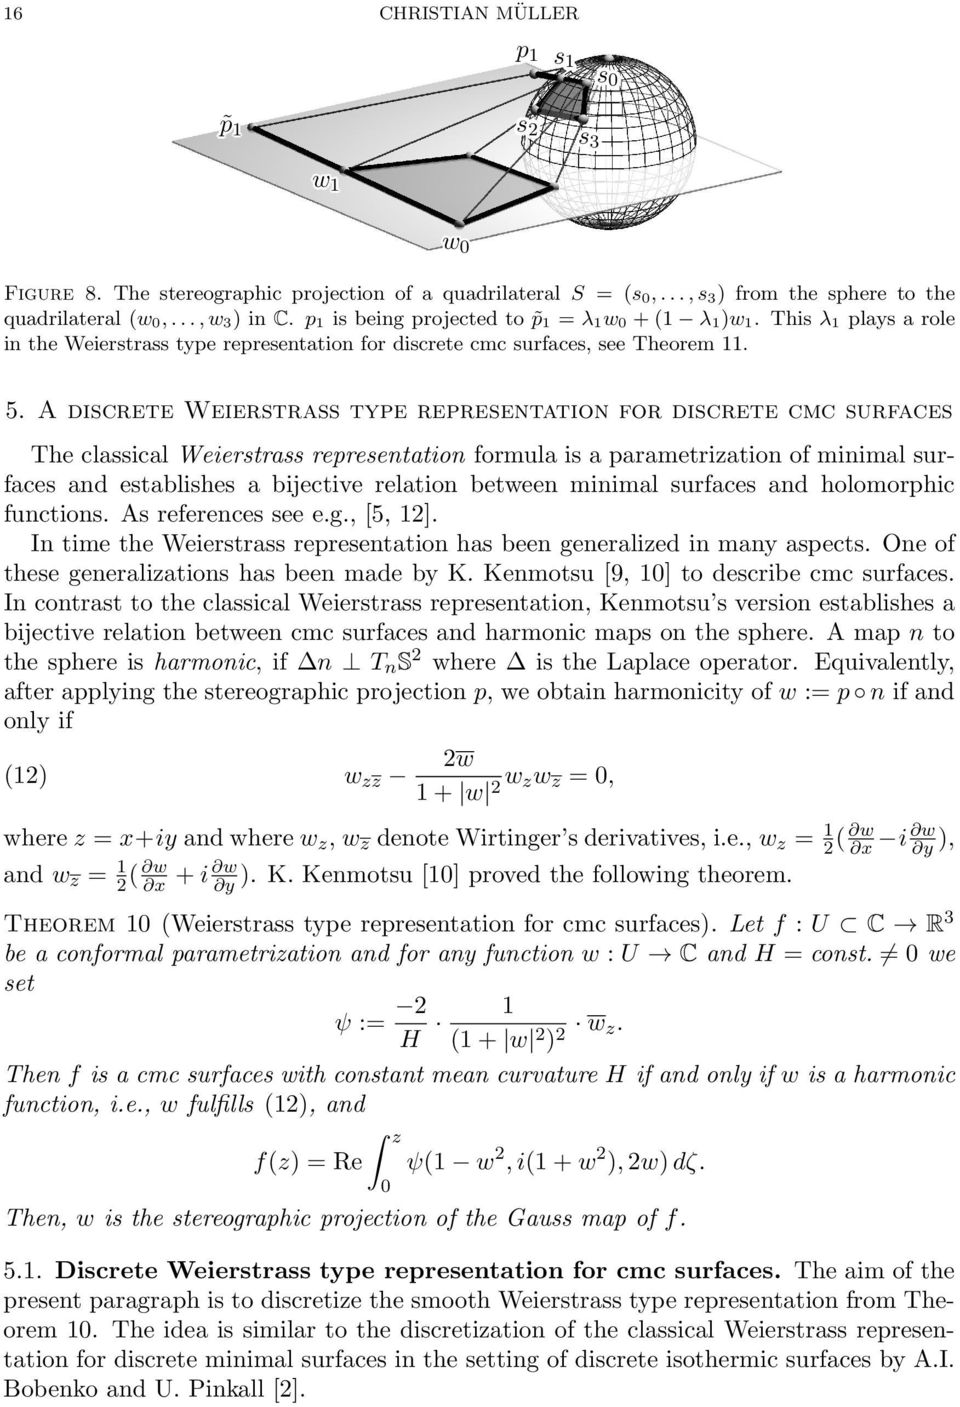 A discrete Weierstrass type representation for discrete cmc surfaces The classical Weierstrass representation formula is a parametrization of minimal surfaces and establishes a bijective relation